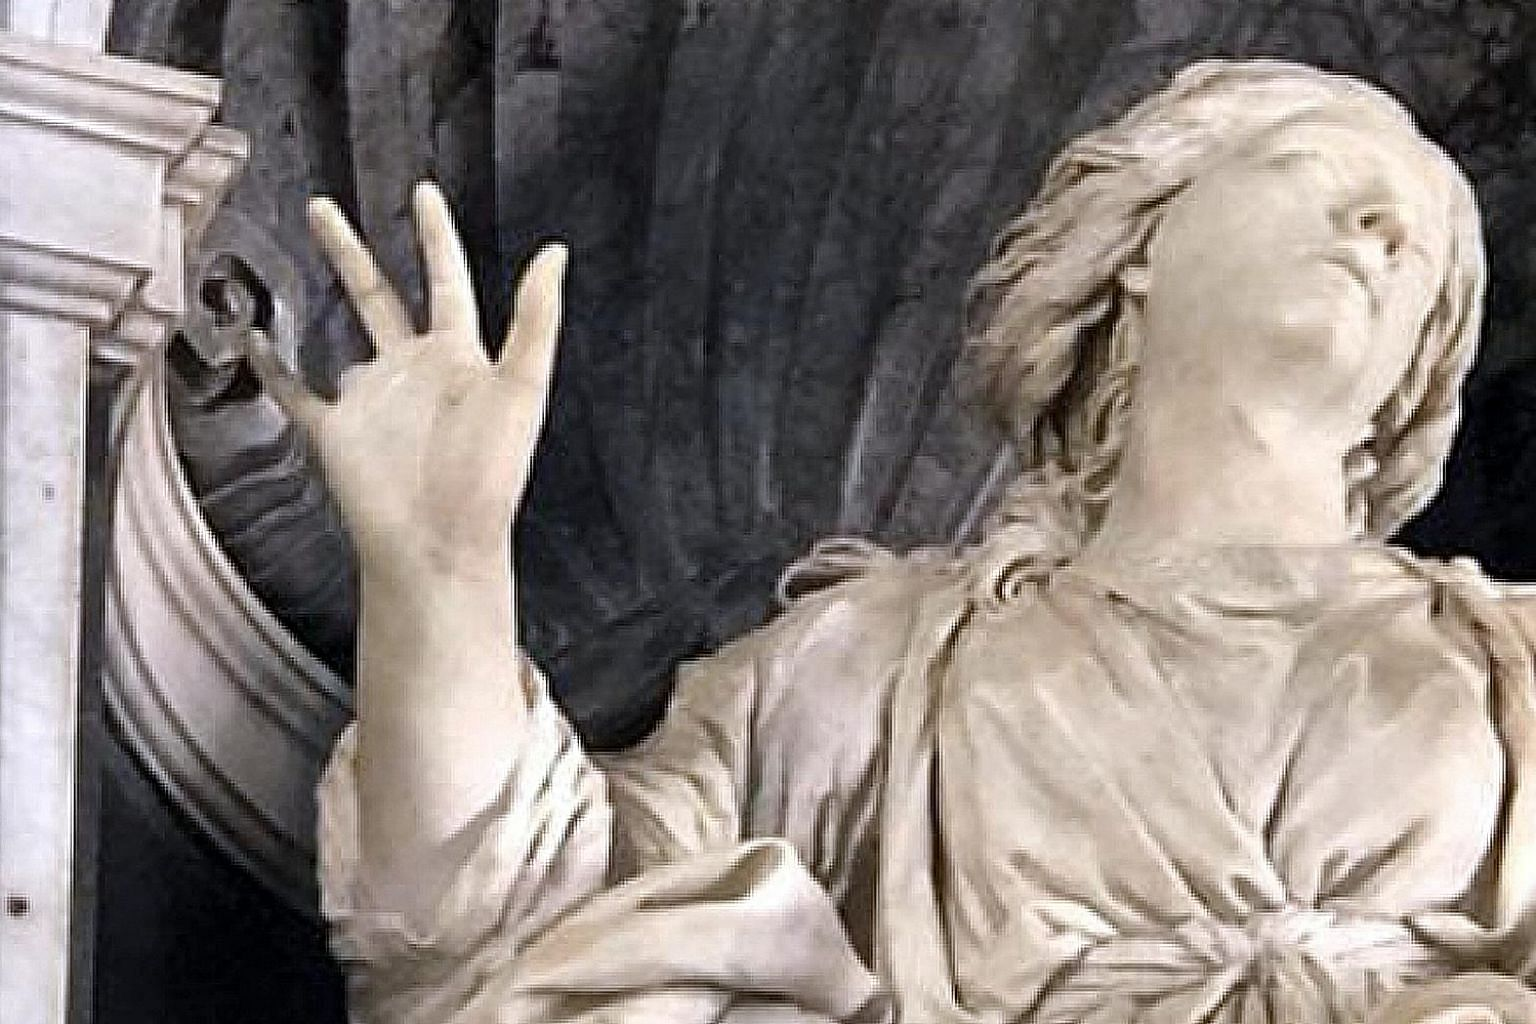 The ring finger of sculptor Gian Lorenzo Bernini's St Bibiana broke off when workers were returning the statue to its niche in Santa Bibiana church, after it was loaned to an exhibition.